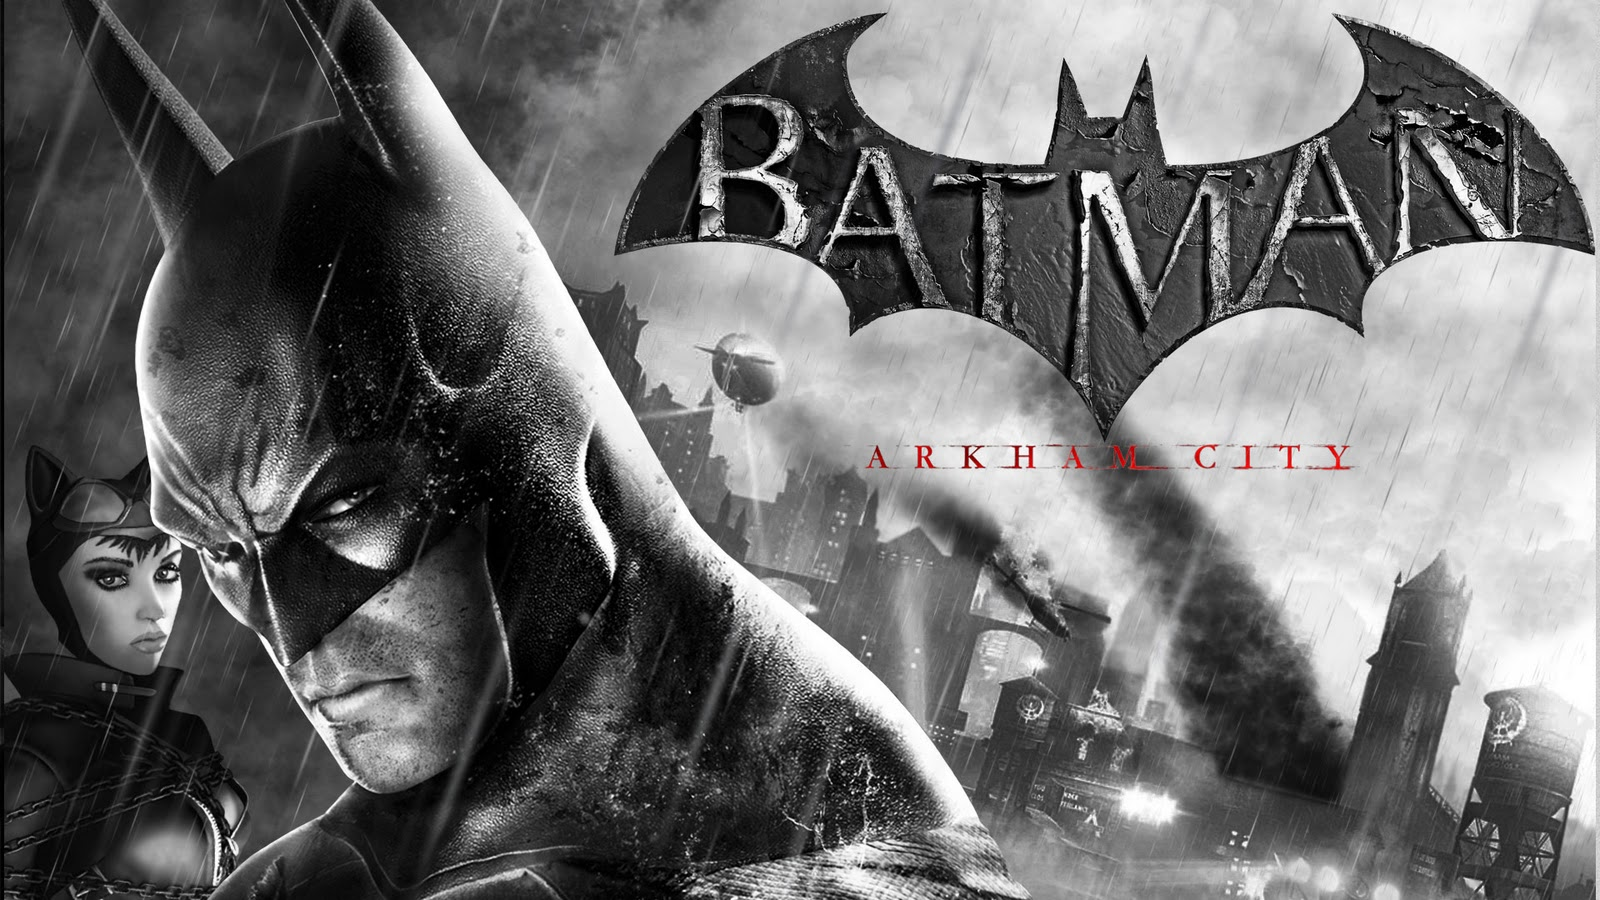 HEROOLOGYcom batman arkham city wallpaper hd 1080p 1600x900